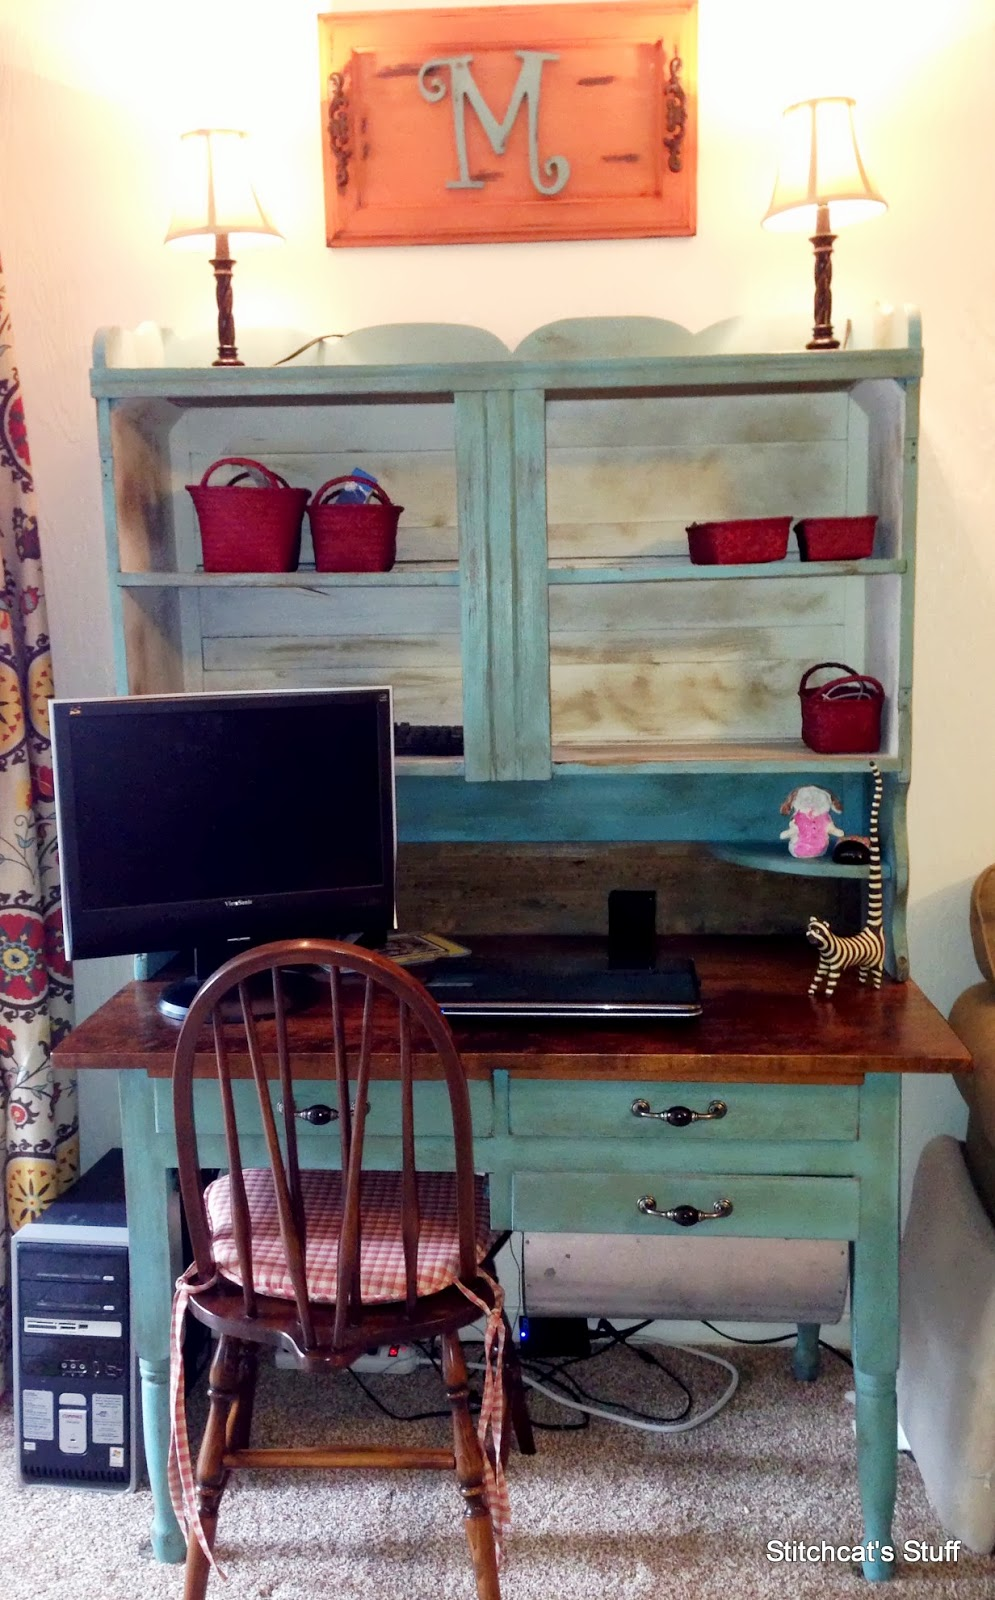 Wheelbarrow cottage cece caldwell chalk and clay paint for Cece caldwell kitchen cabinets